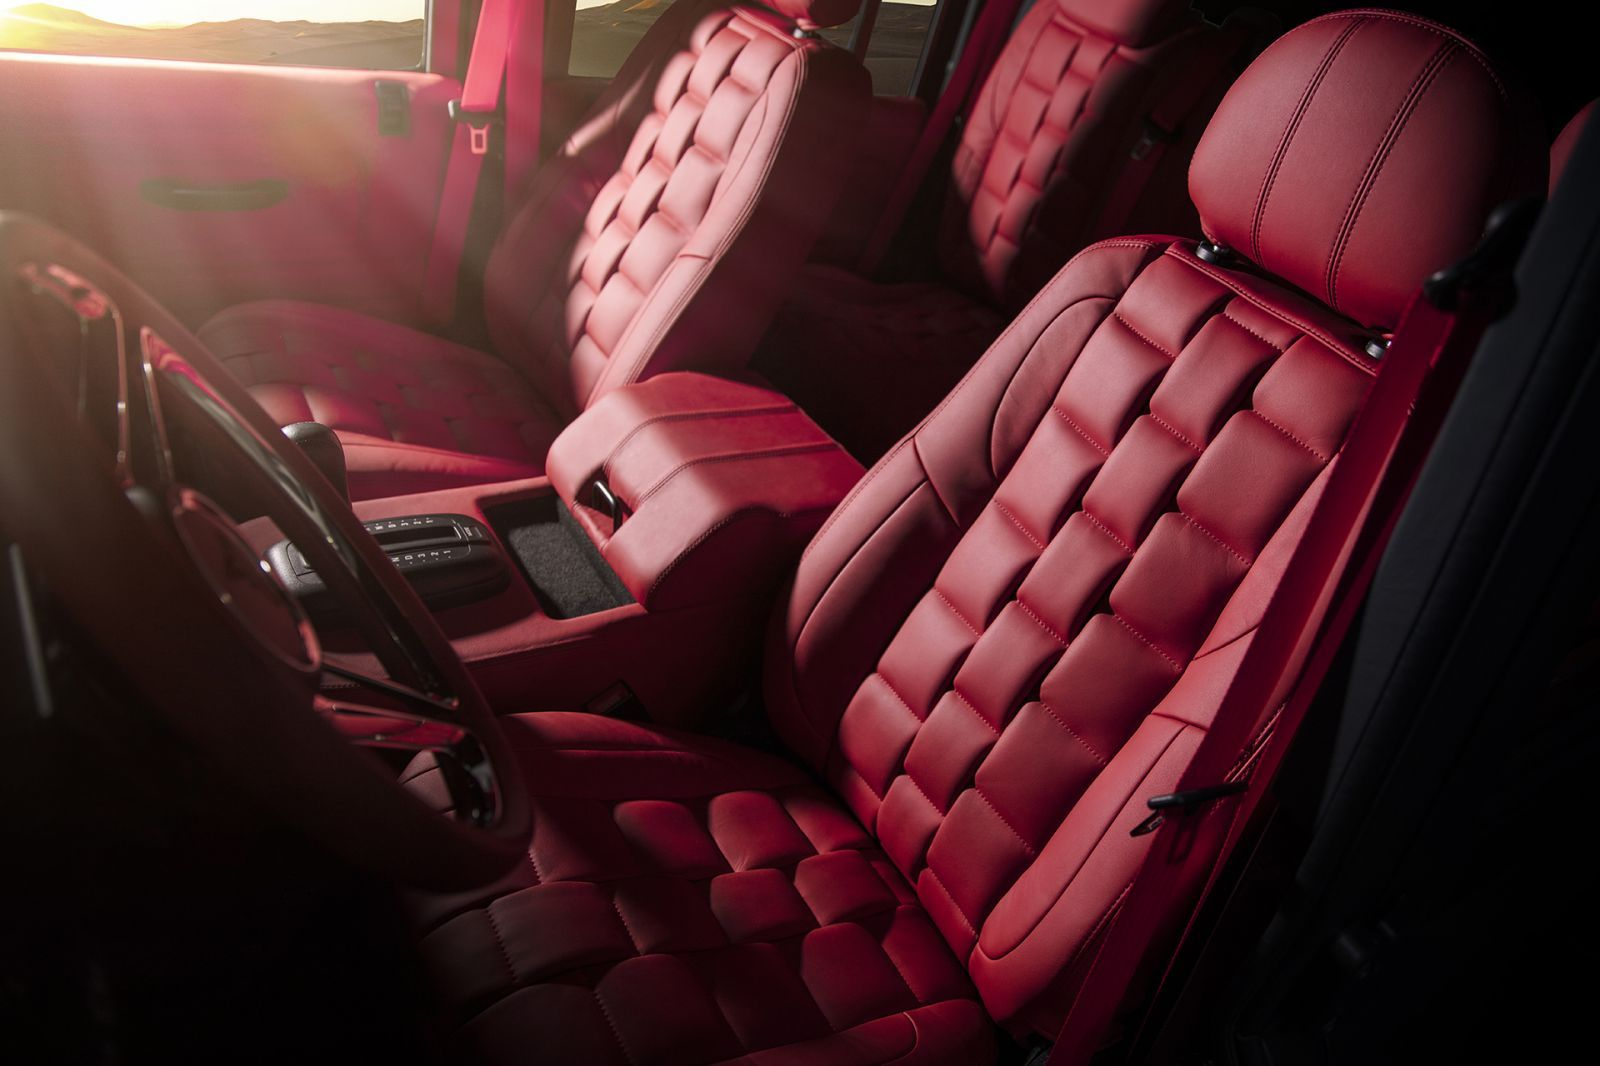 Land Rover Defender 110 (1991-2016) Leather Interior by Chelsea Truck Company - Image 1093